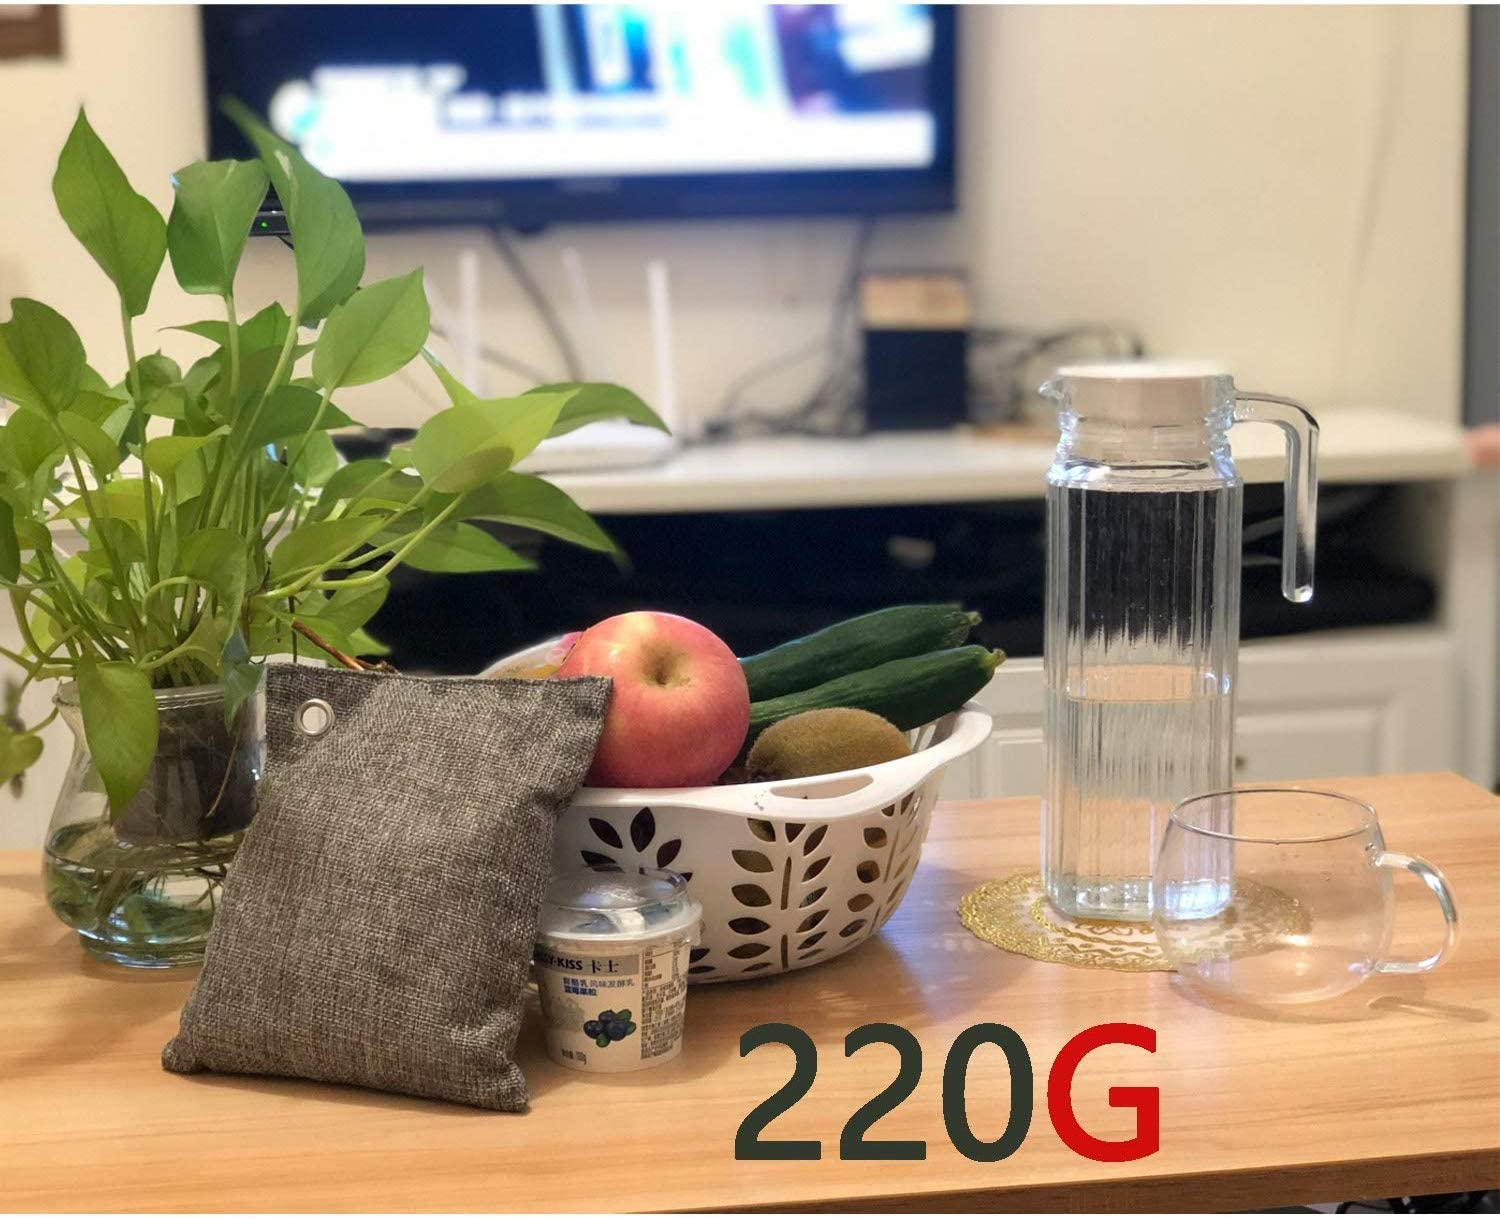 4X220 G Activated Bamboo Charcoal Natural Eco Friendly for Home 2X100 G DTXDTech Bamboo Charcoal Bags 8 Pack 2X500 G Car,Closet,Shoes